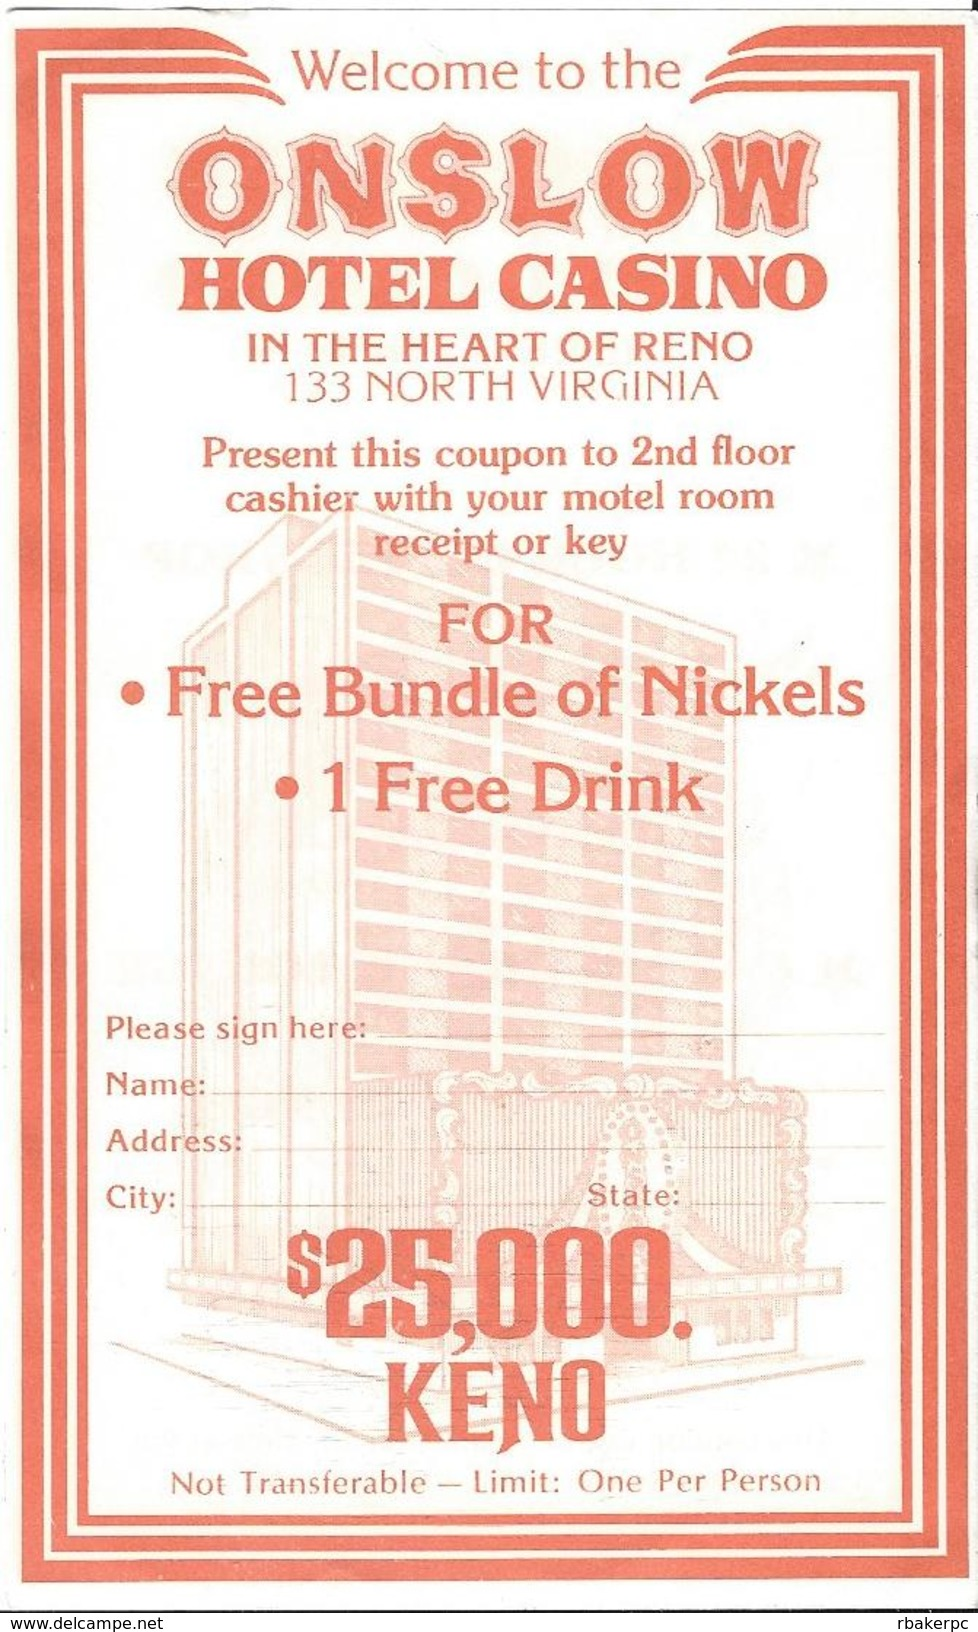 Onslow Casino - Reno, NV - 3 X 5.5 Inch Paper Coupon For Free Bundle Of Nickels & 1 Free Drink - Advertising